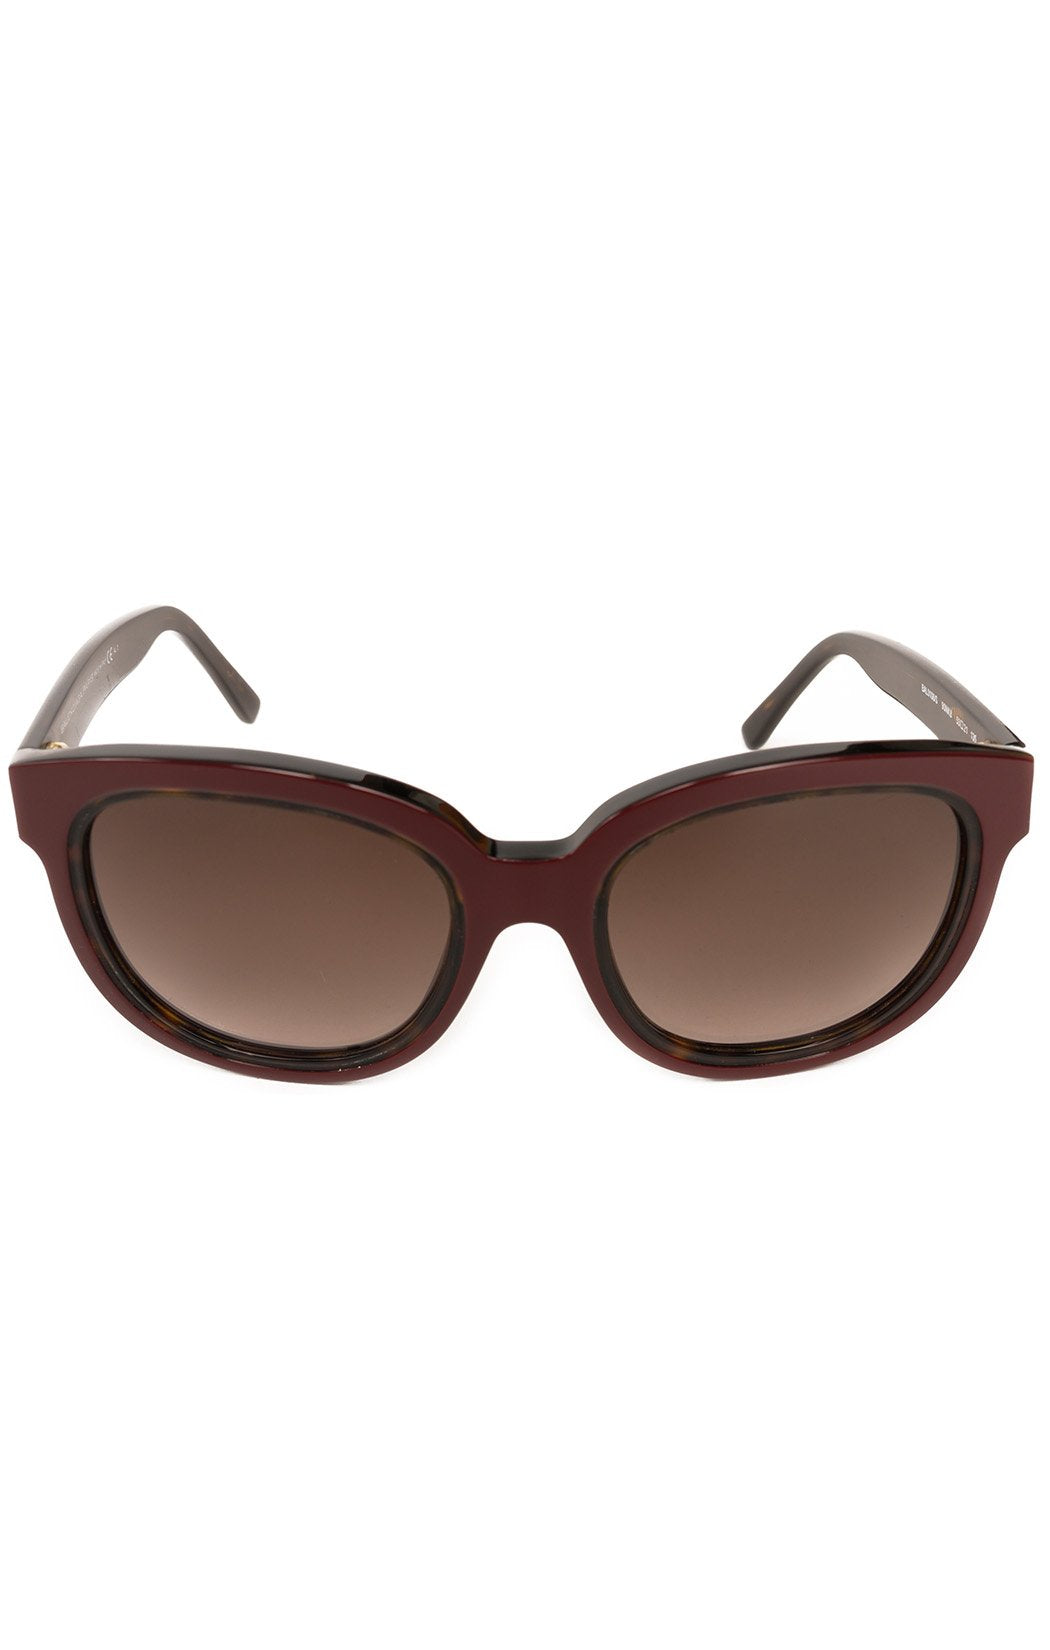 "Front view of BALENCIAGA  Sunglasses  Size: 5.5"" W x 2.5"" H"